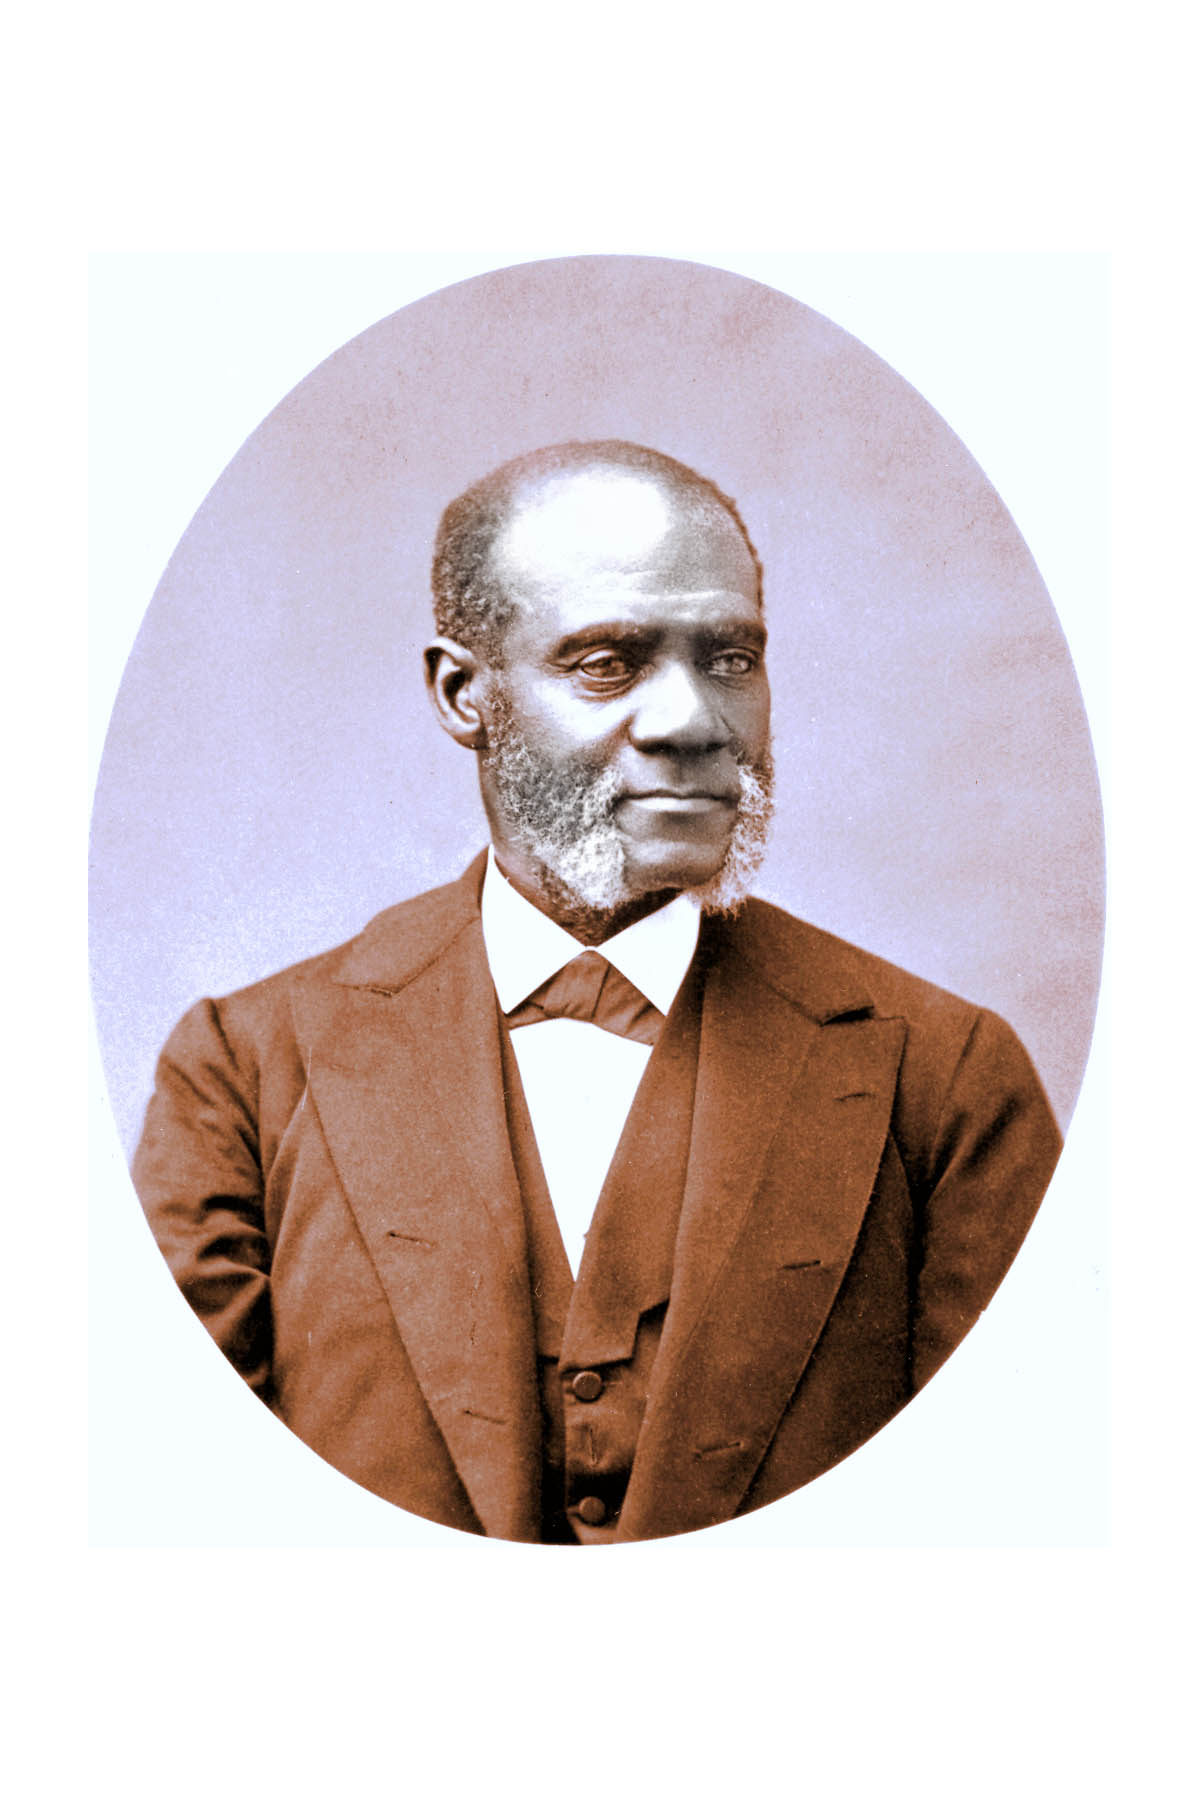 Rev Henry Highland Garnett was an African Mandinkan leader of the Presbyterian church in NYC in the 19th Century.